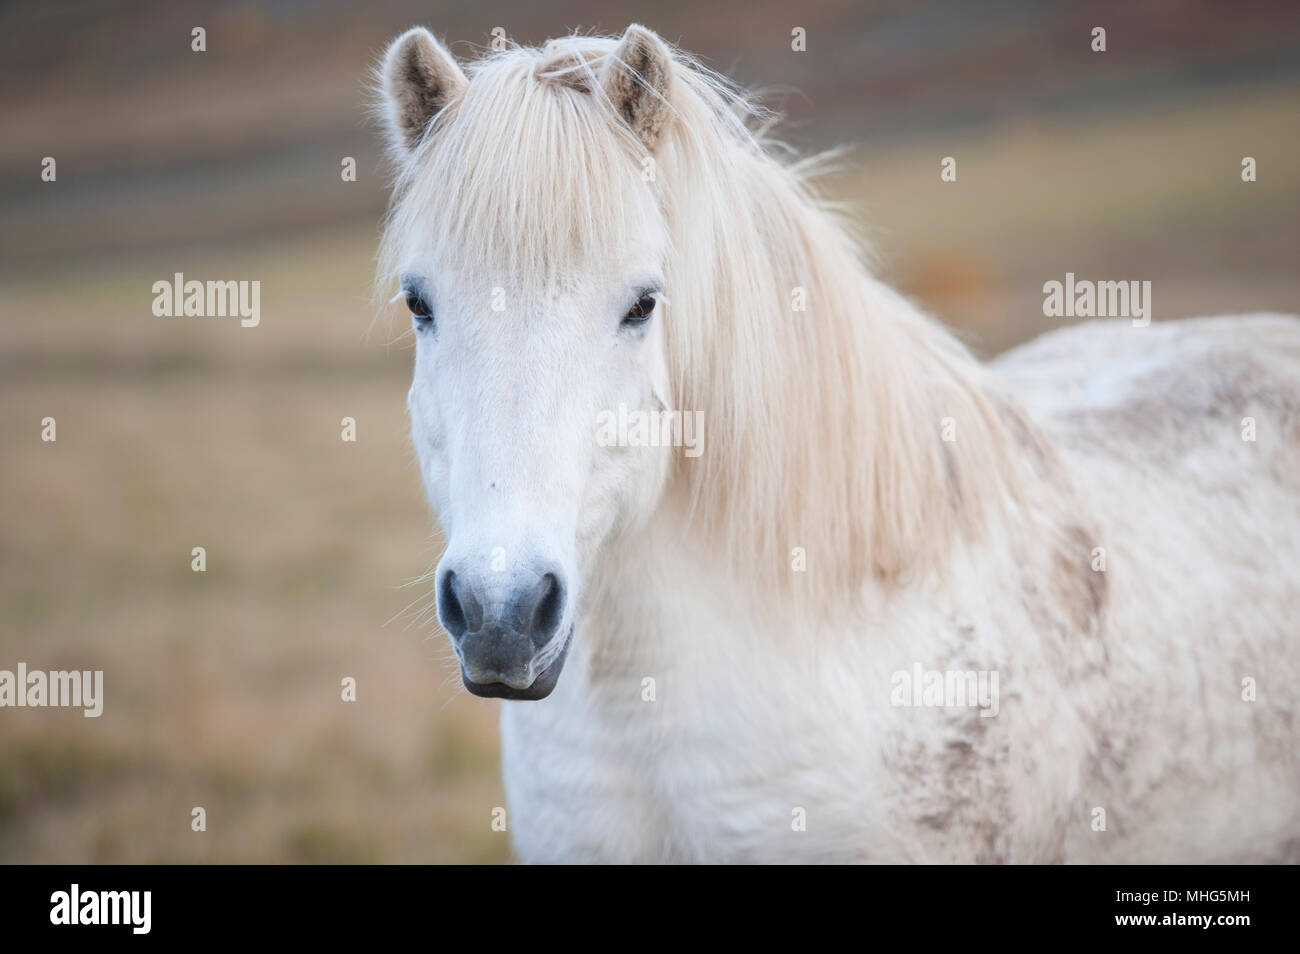 White Icelandic horse in a field - Stock Image